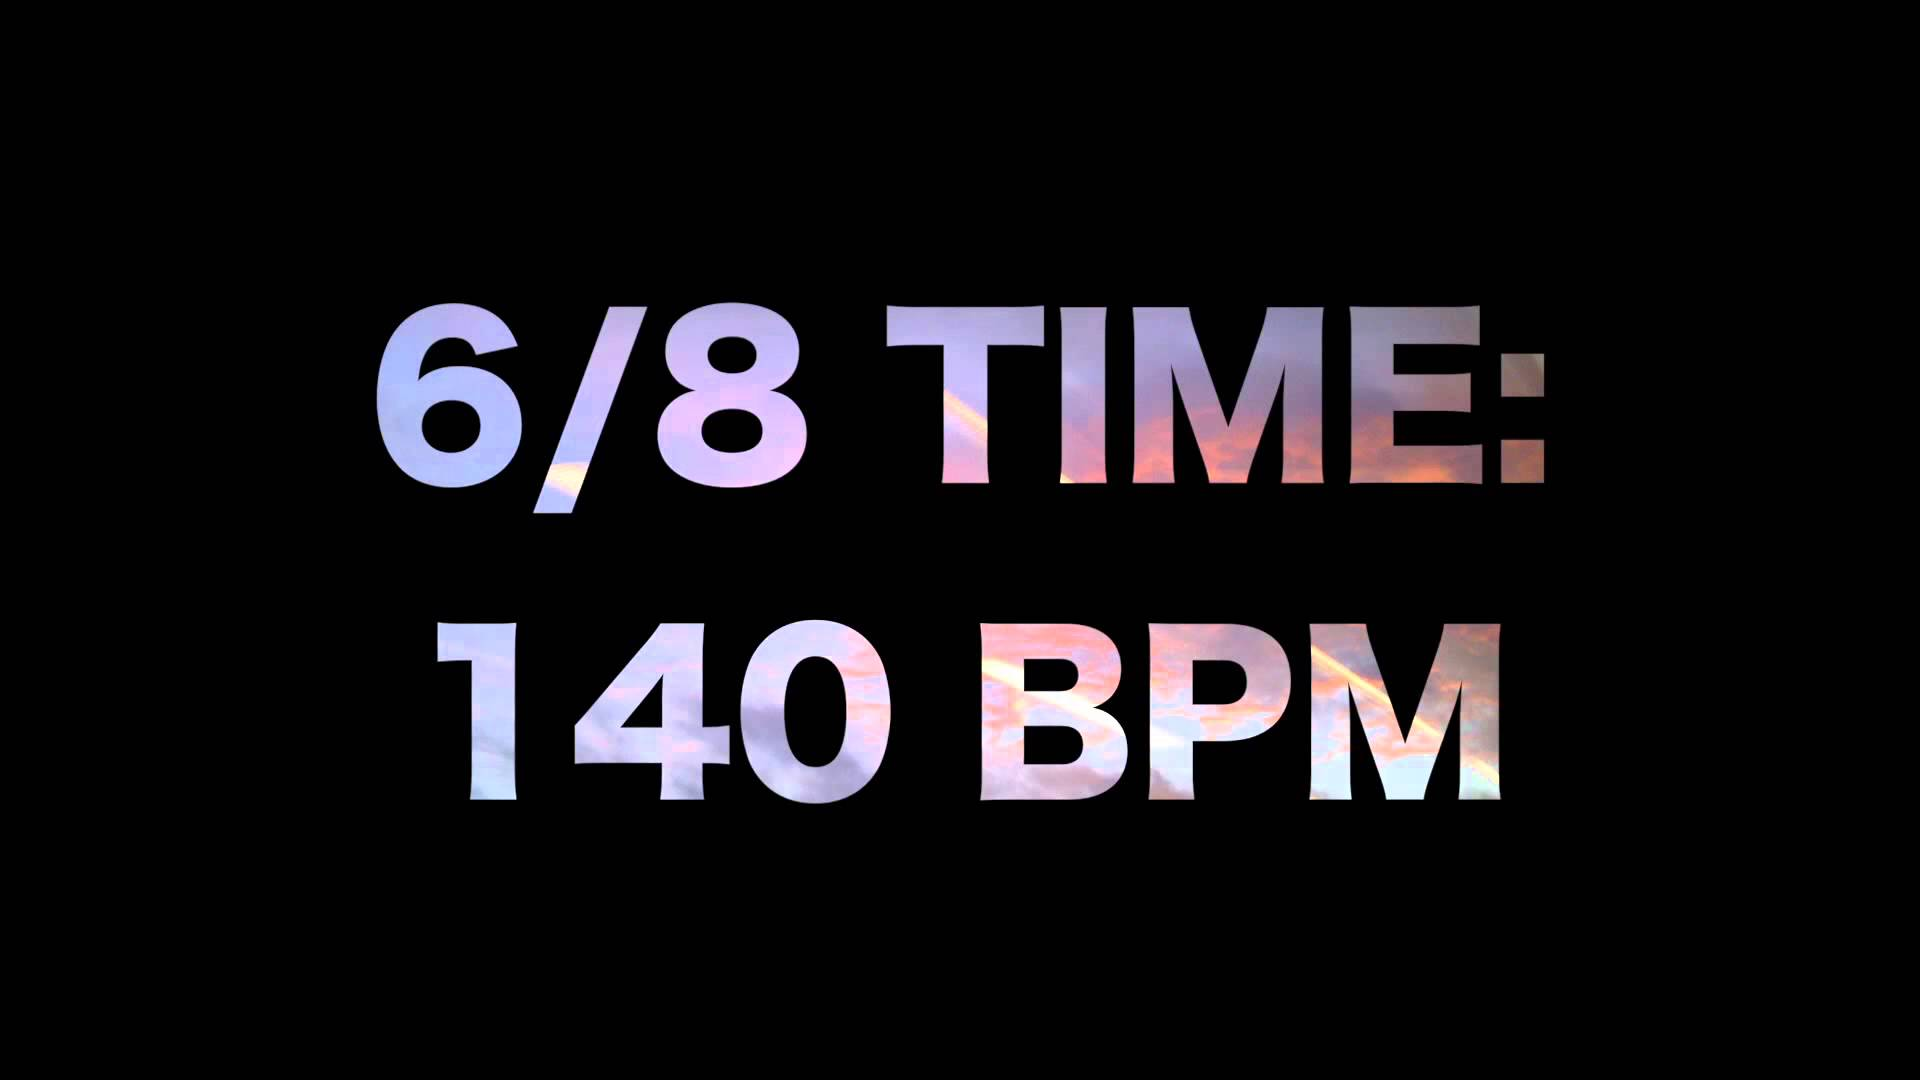 Change bpm faster or slower for your audio or video